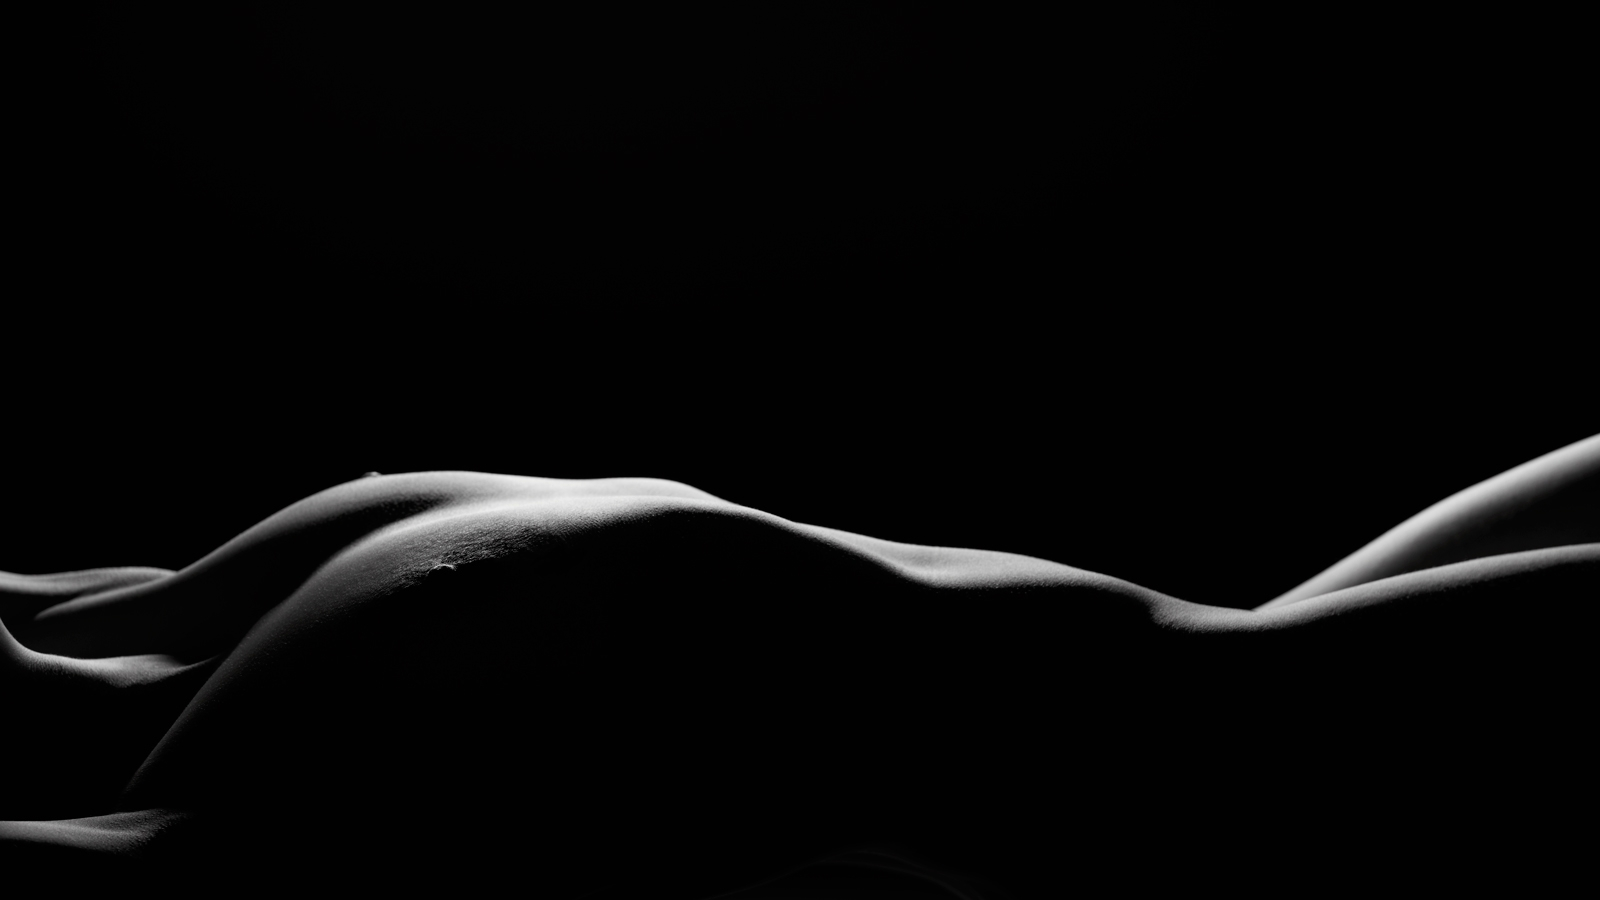 160309_WRBodyscapes_L_020.jpg